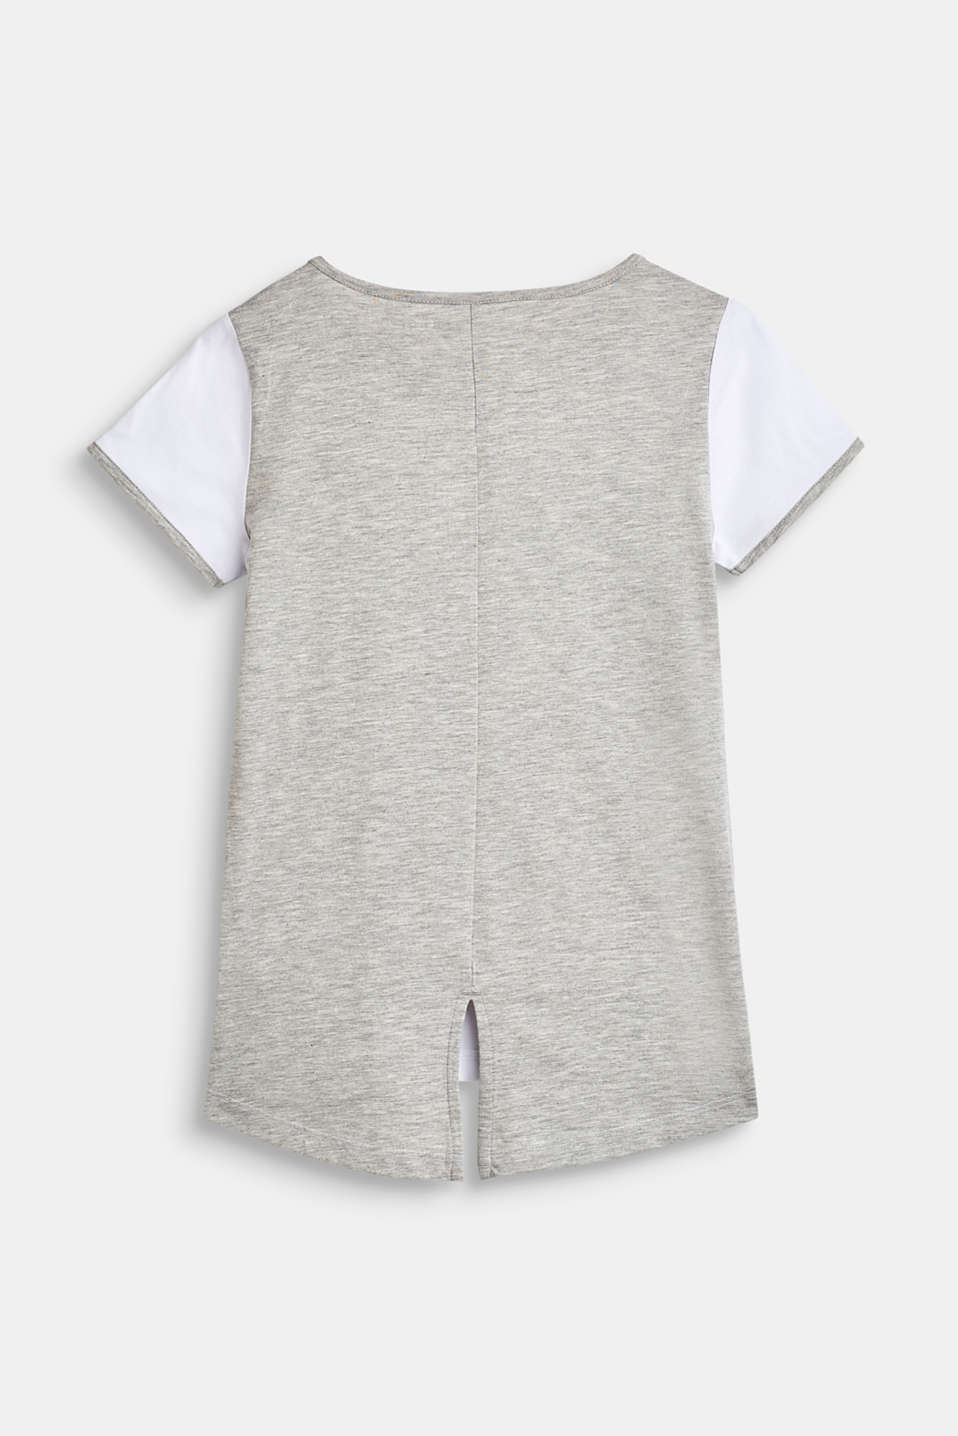 Printed T-shirt in a mix of materials, LCHEATHER SILVER, detail image number 1